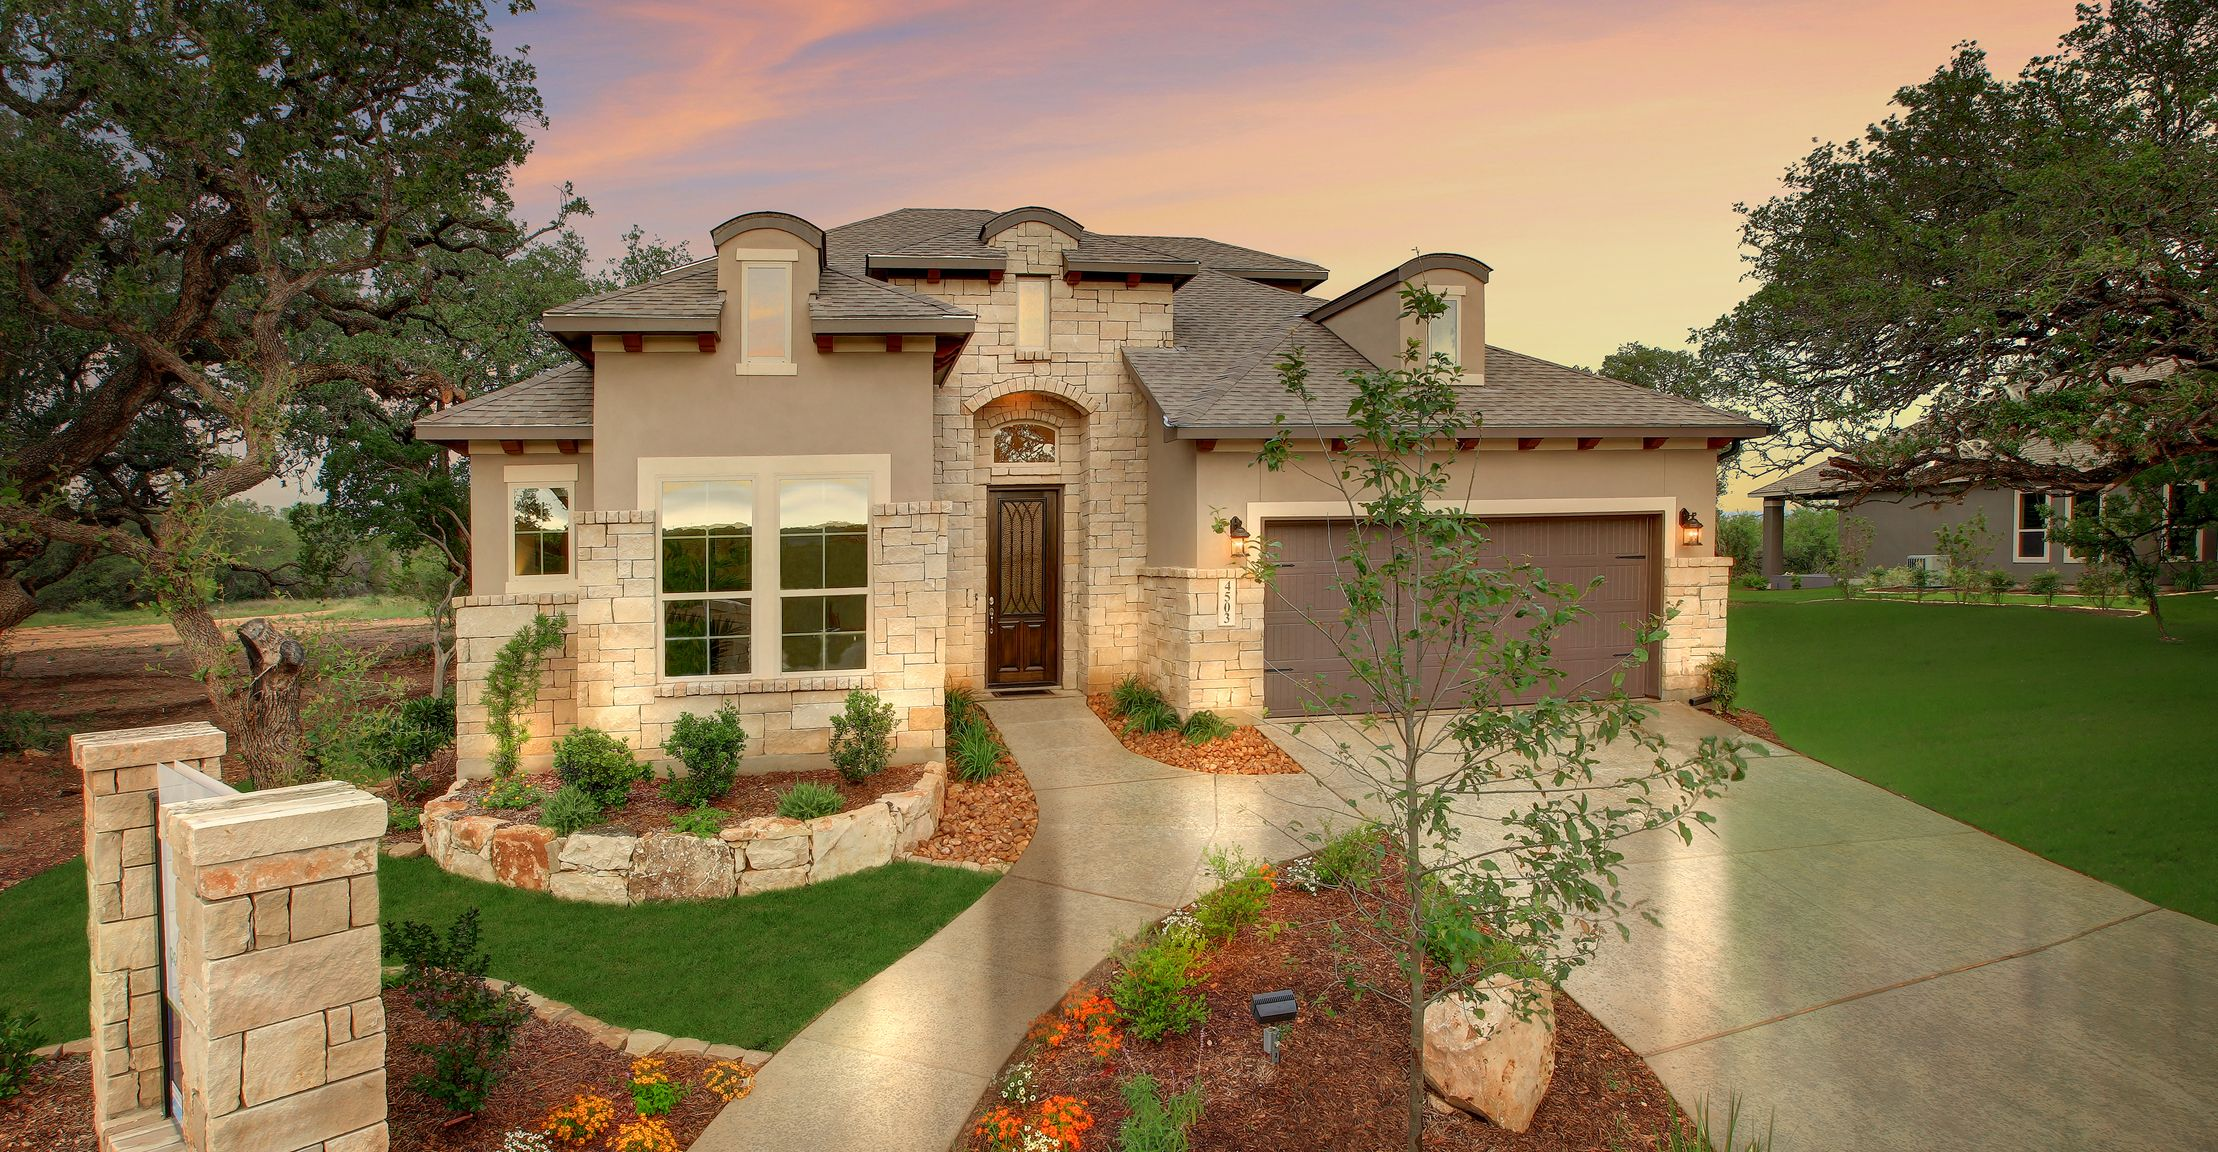 Charmant New Imagine Homesu0027 Model Home In Amorosa In Cibolo Canyons. 4503 Amorosa  Way San